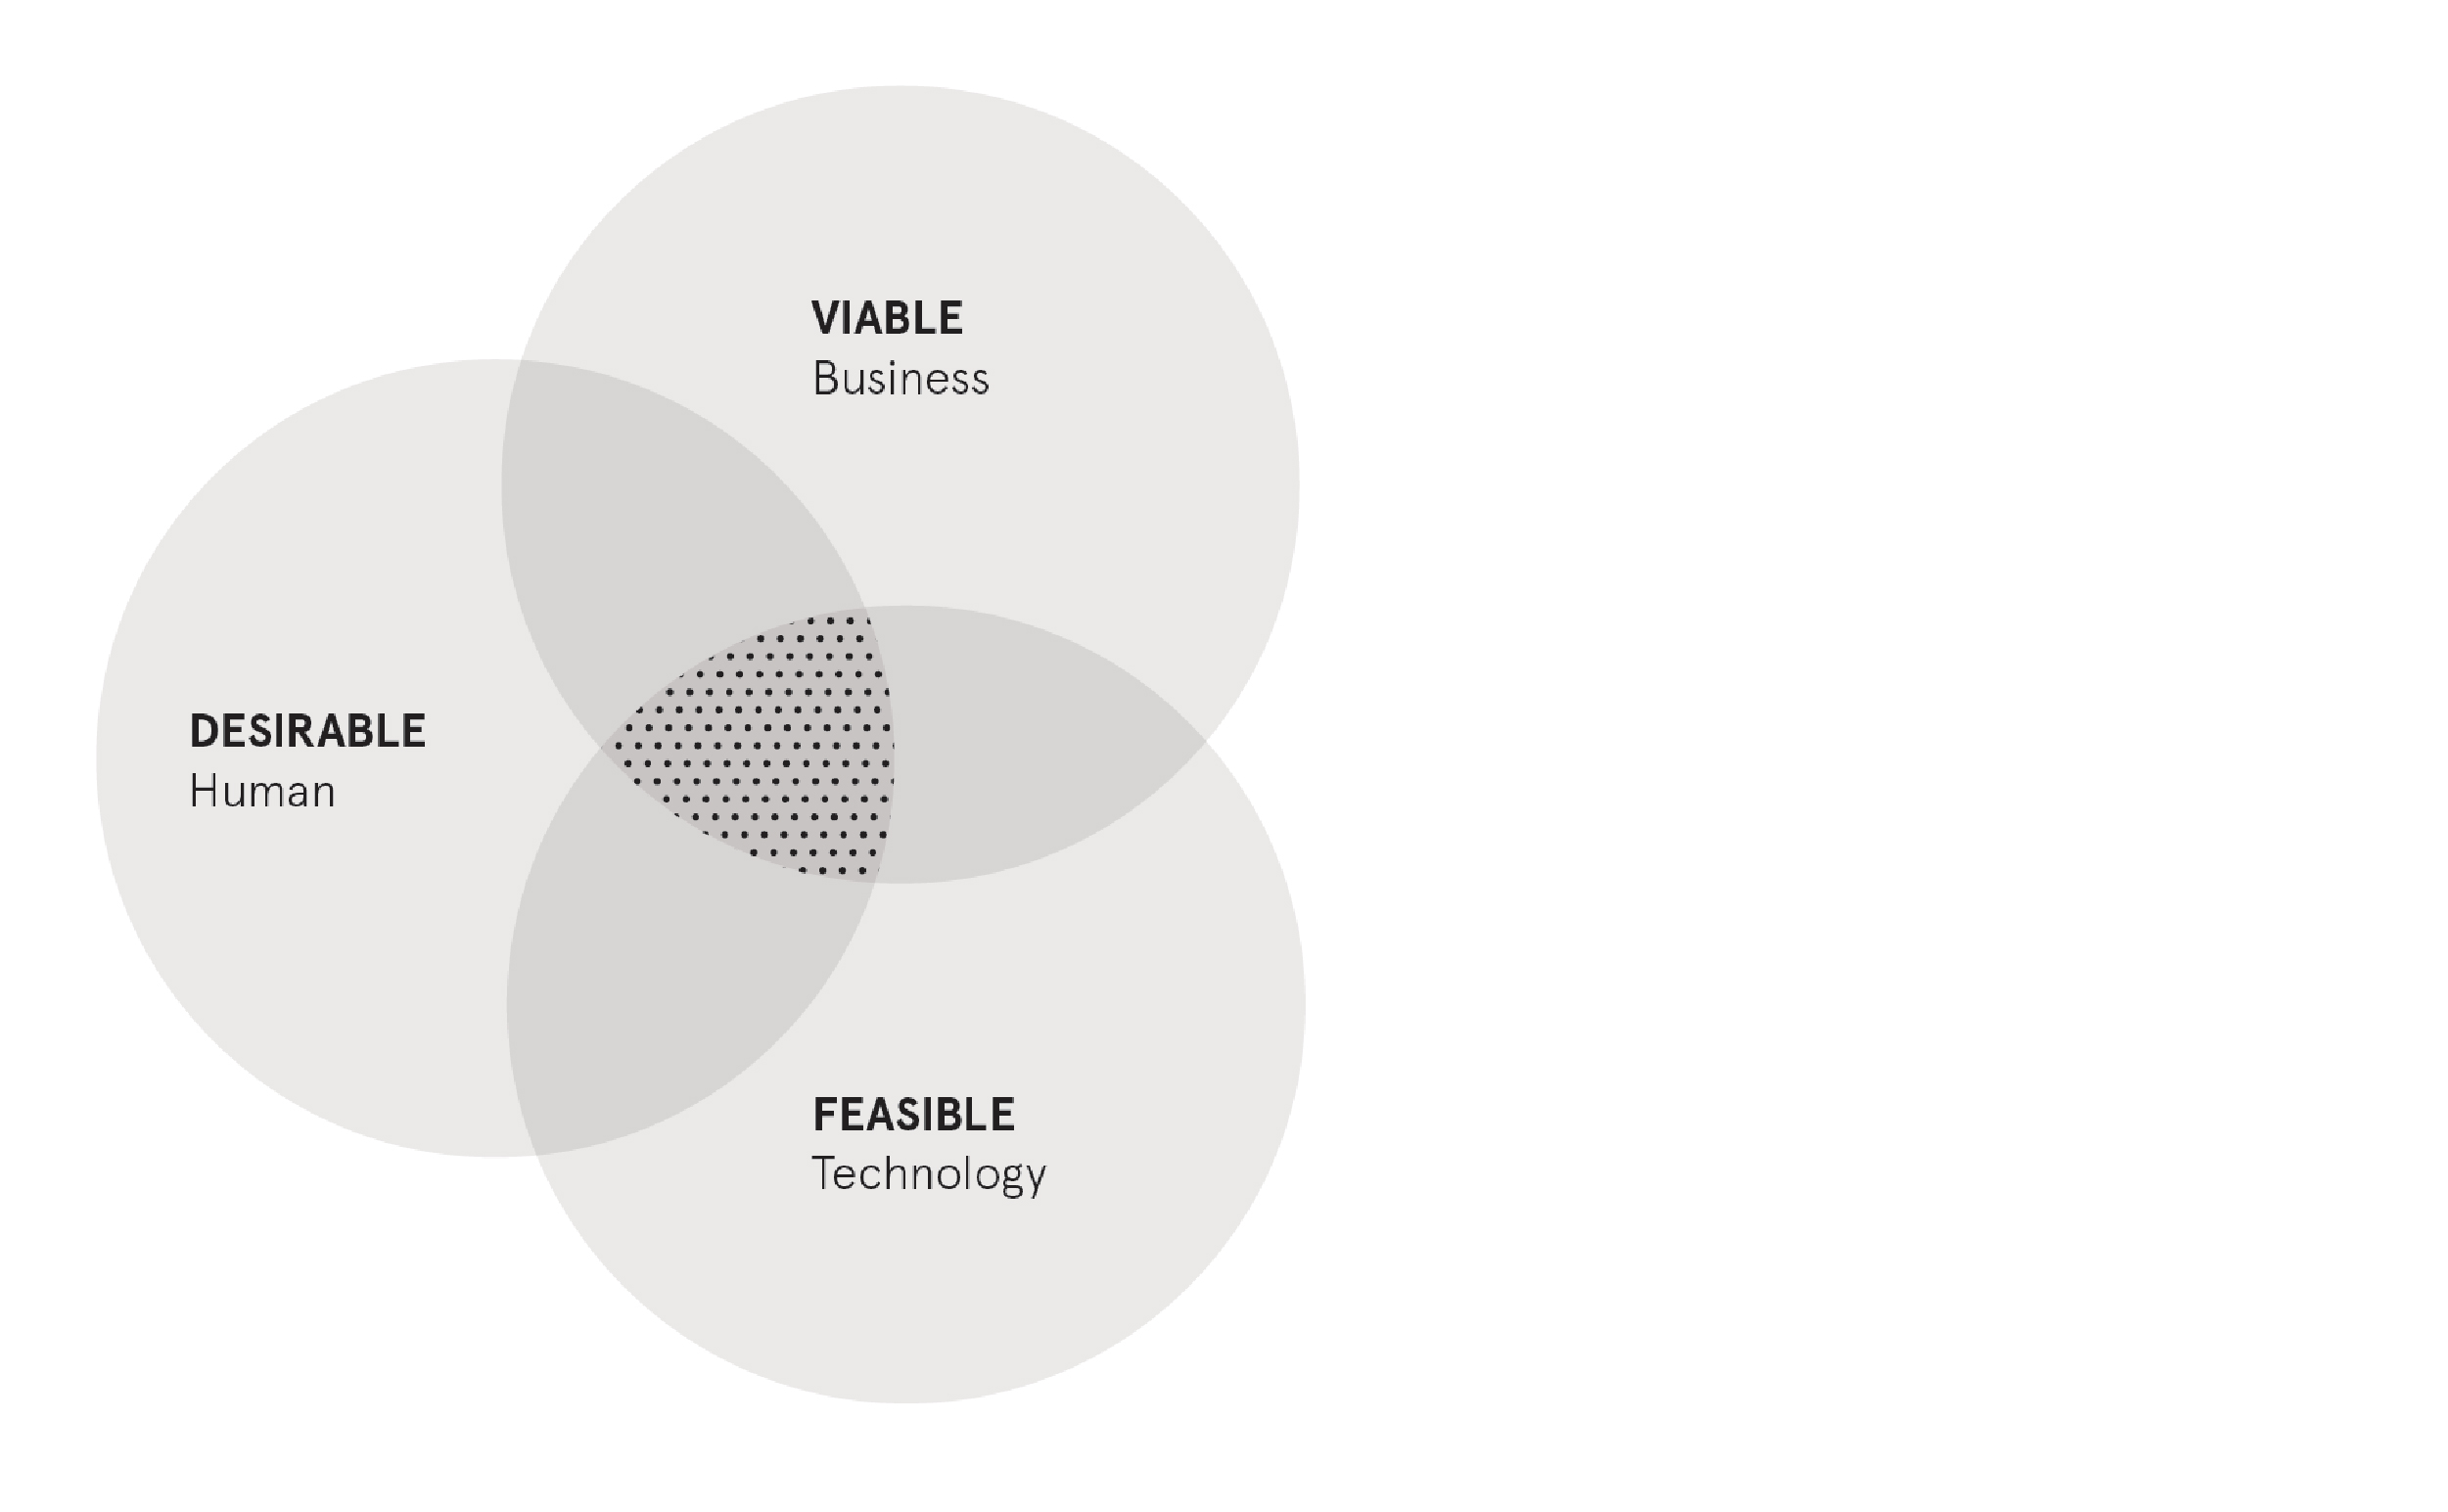 Human Design Brands to life blog - Diagram by Ideo